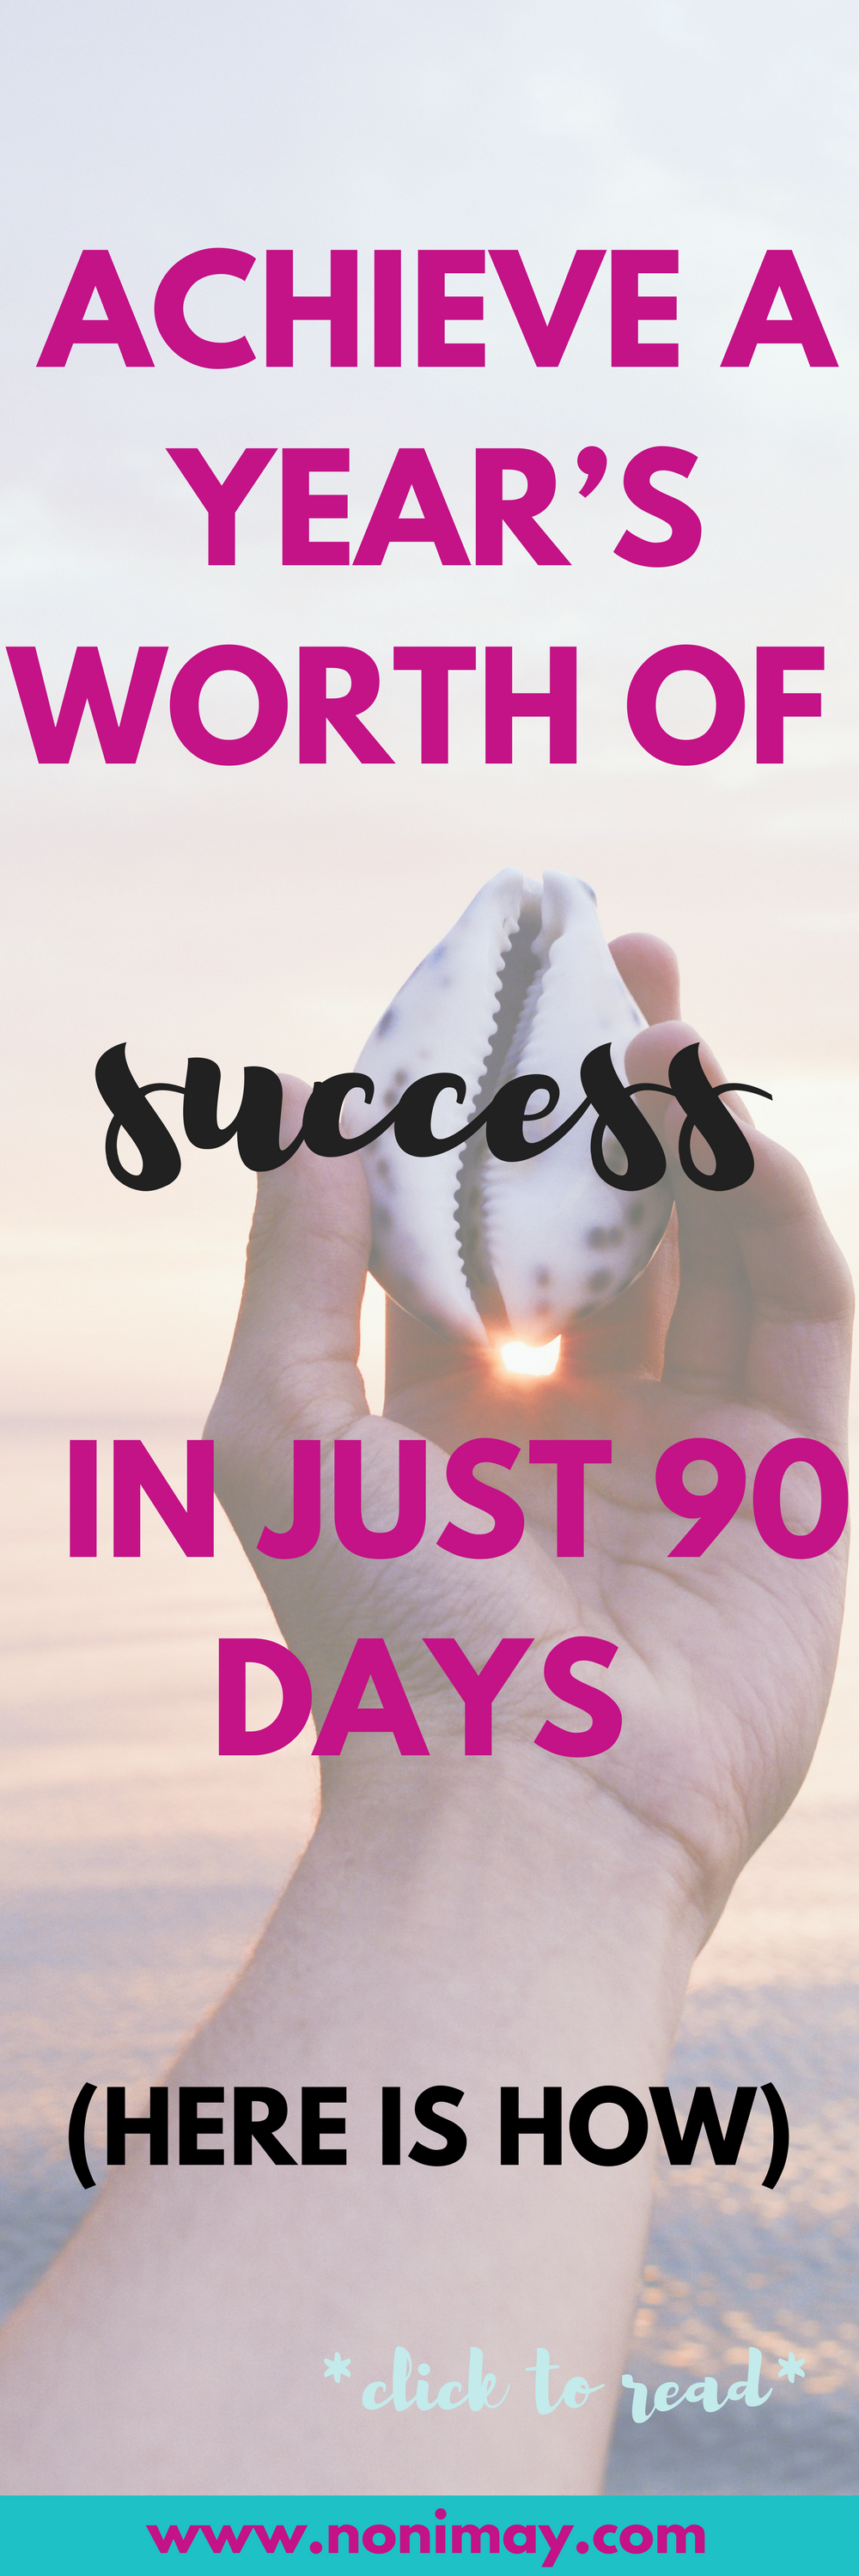 Achieve a YEAR'S worth of success in just 90 Days (Here is How)